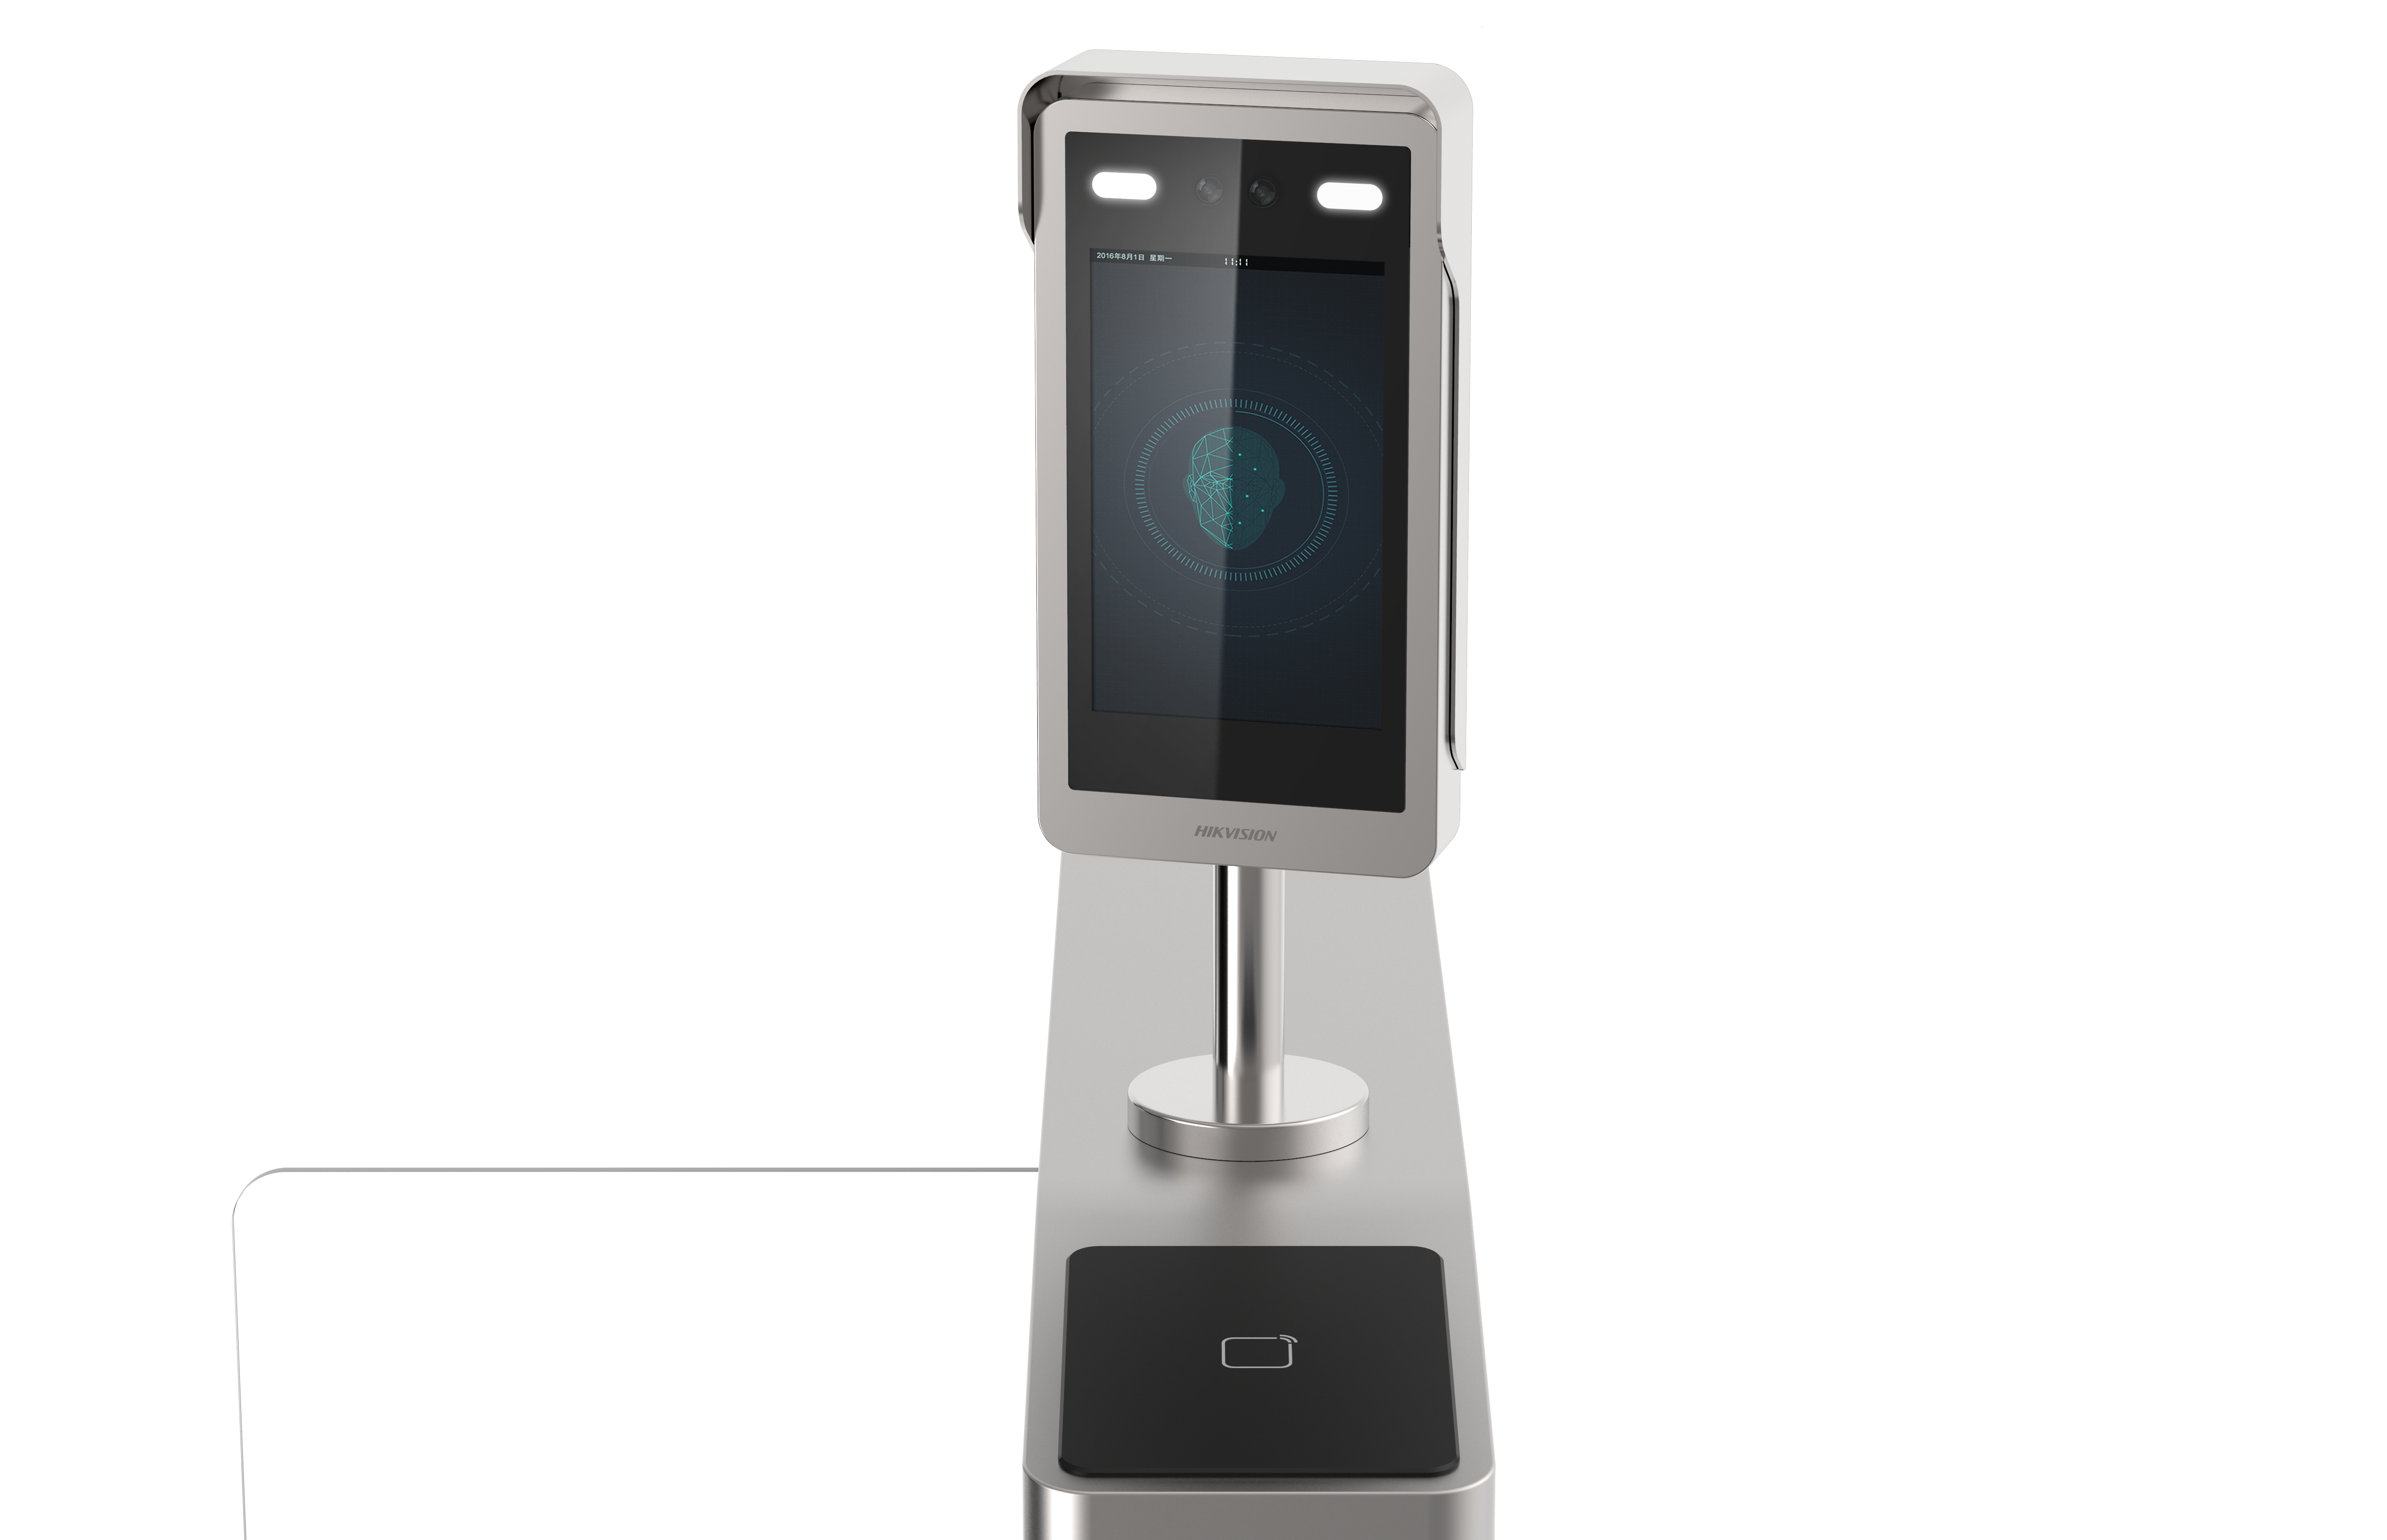 Face recognition device close-up